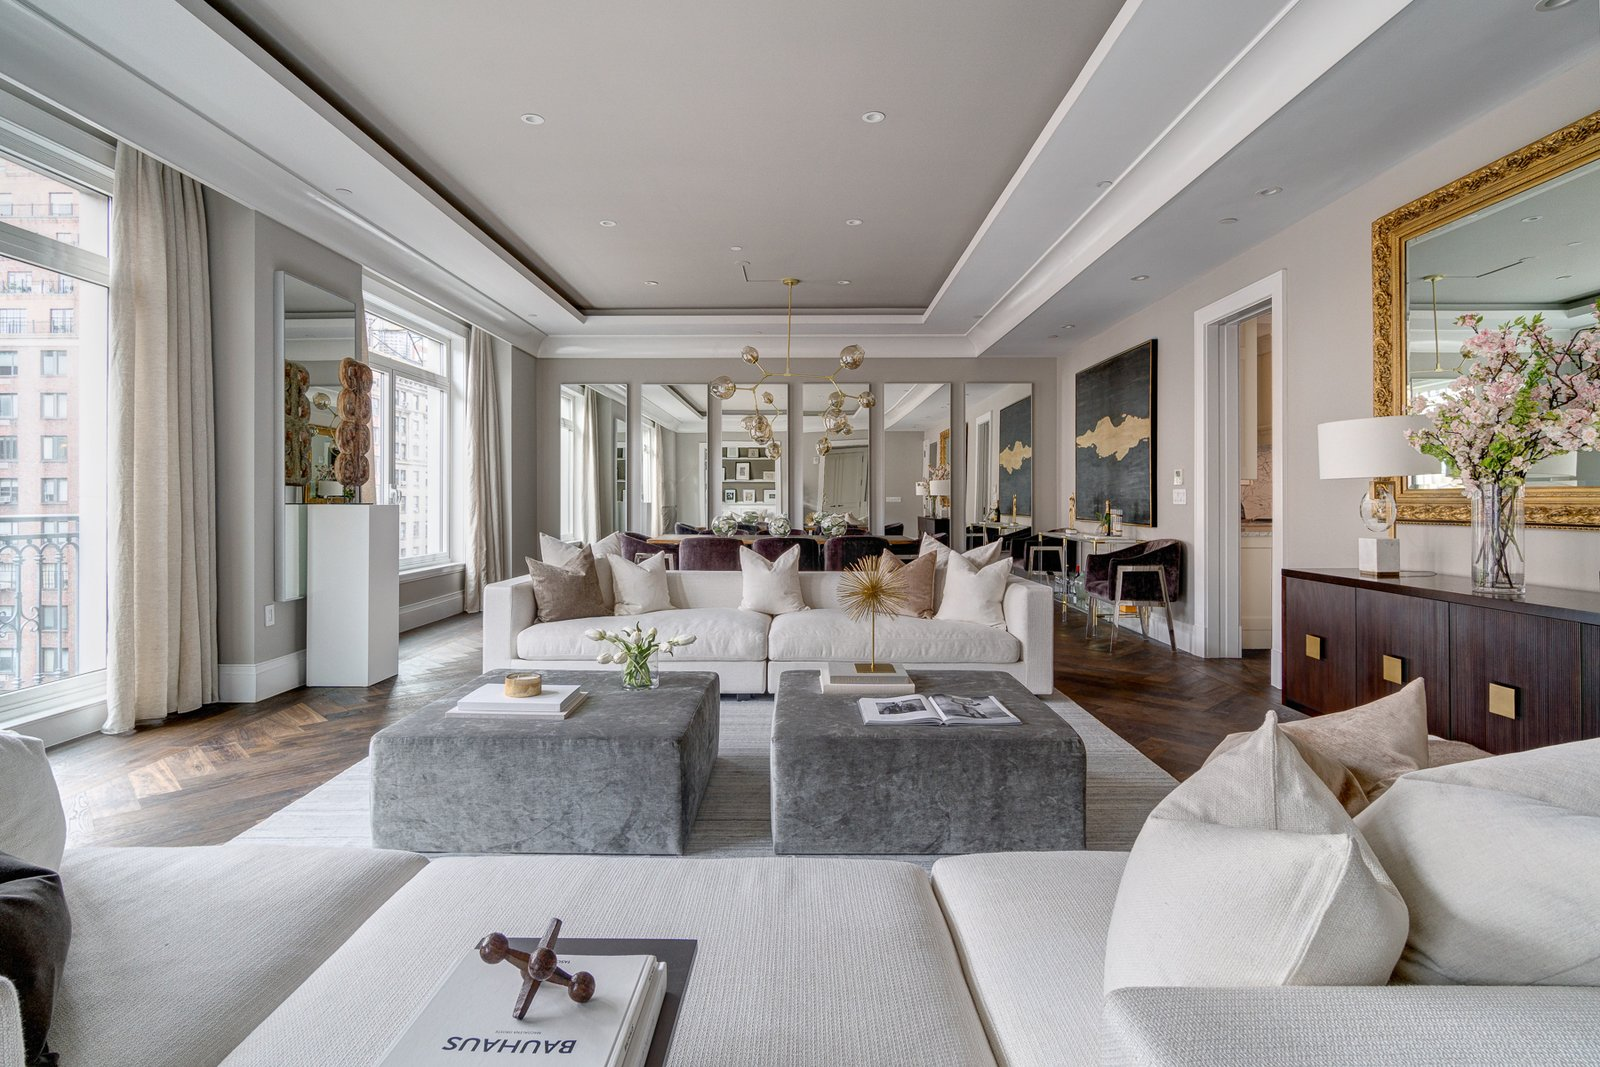 Stunning sun-drenched living room  Grand for Entertaining by Stribling & Associates